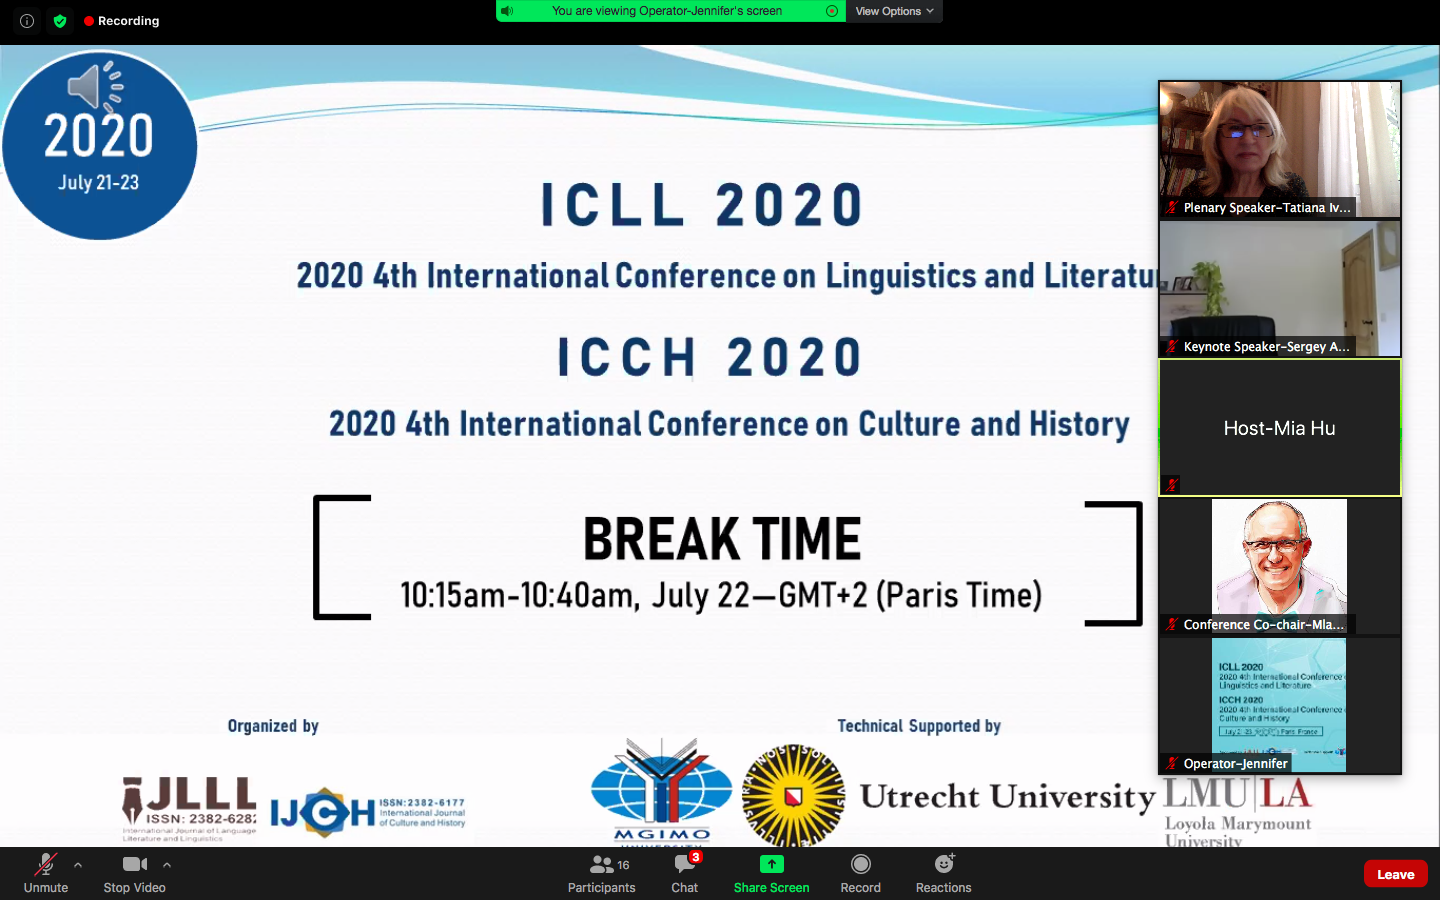 ICLL 2020 & ICCH 2020